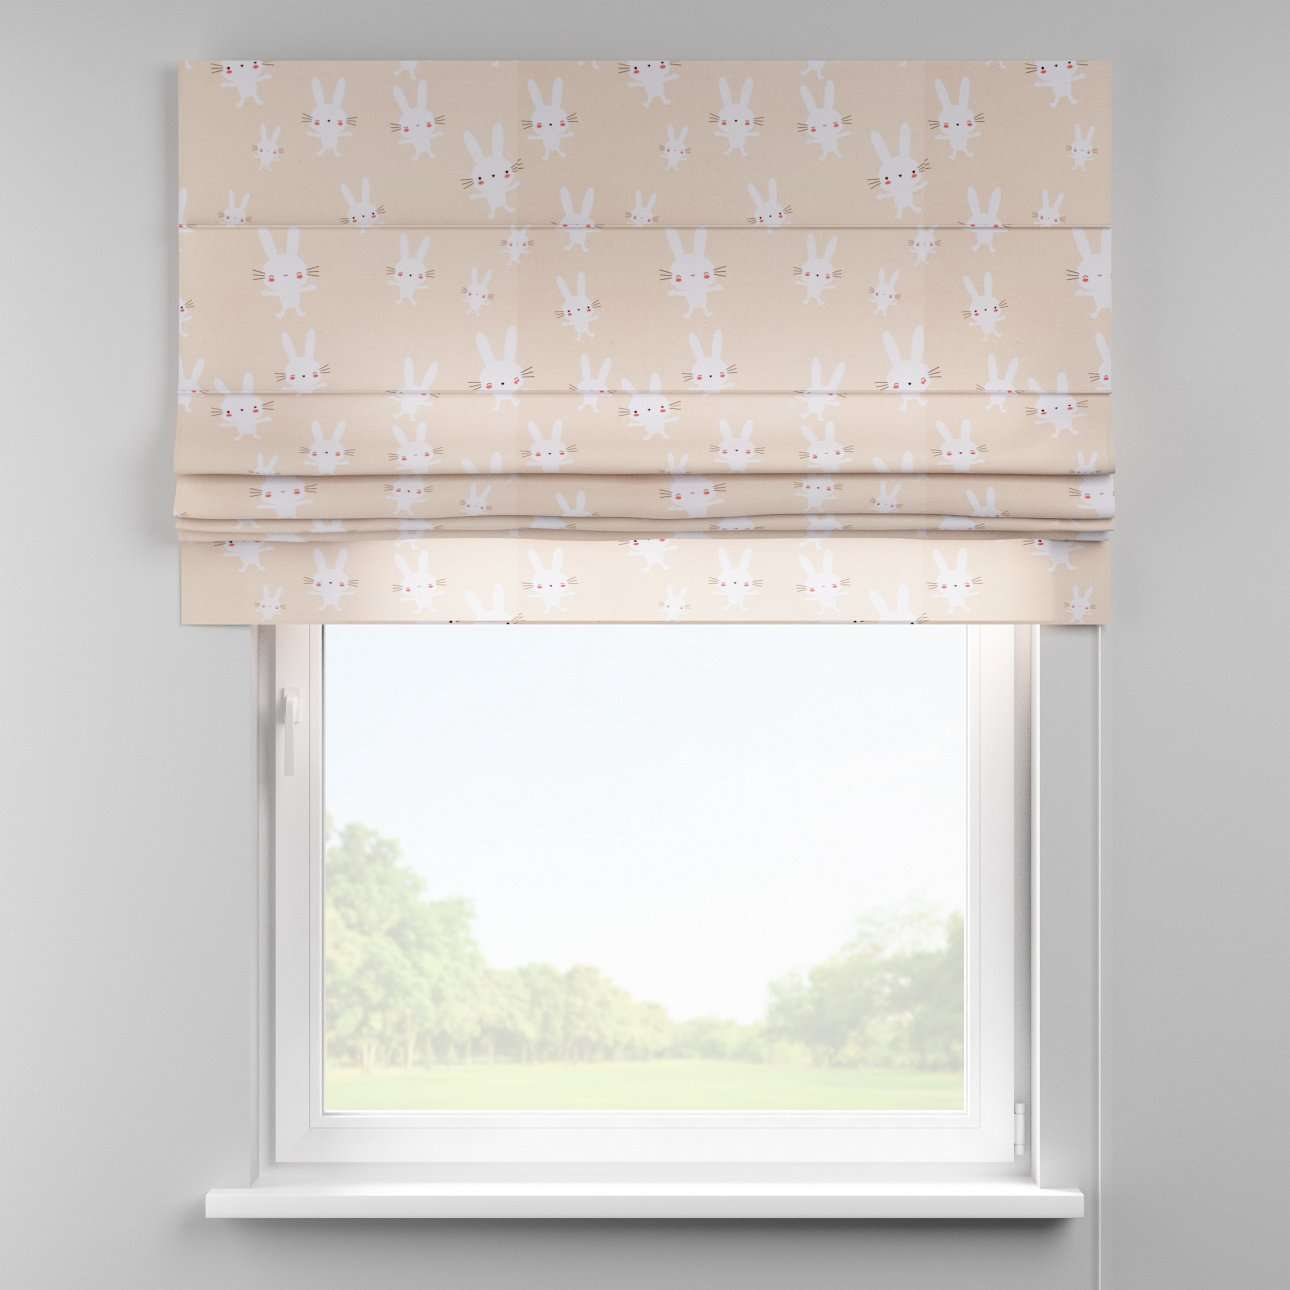 Padva roman blind  80 x 170 cm (31.5 x 67 inch) in collection Apanona, fabric: 151-00